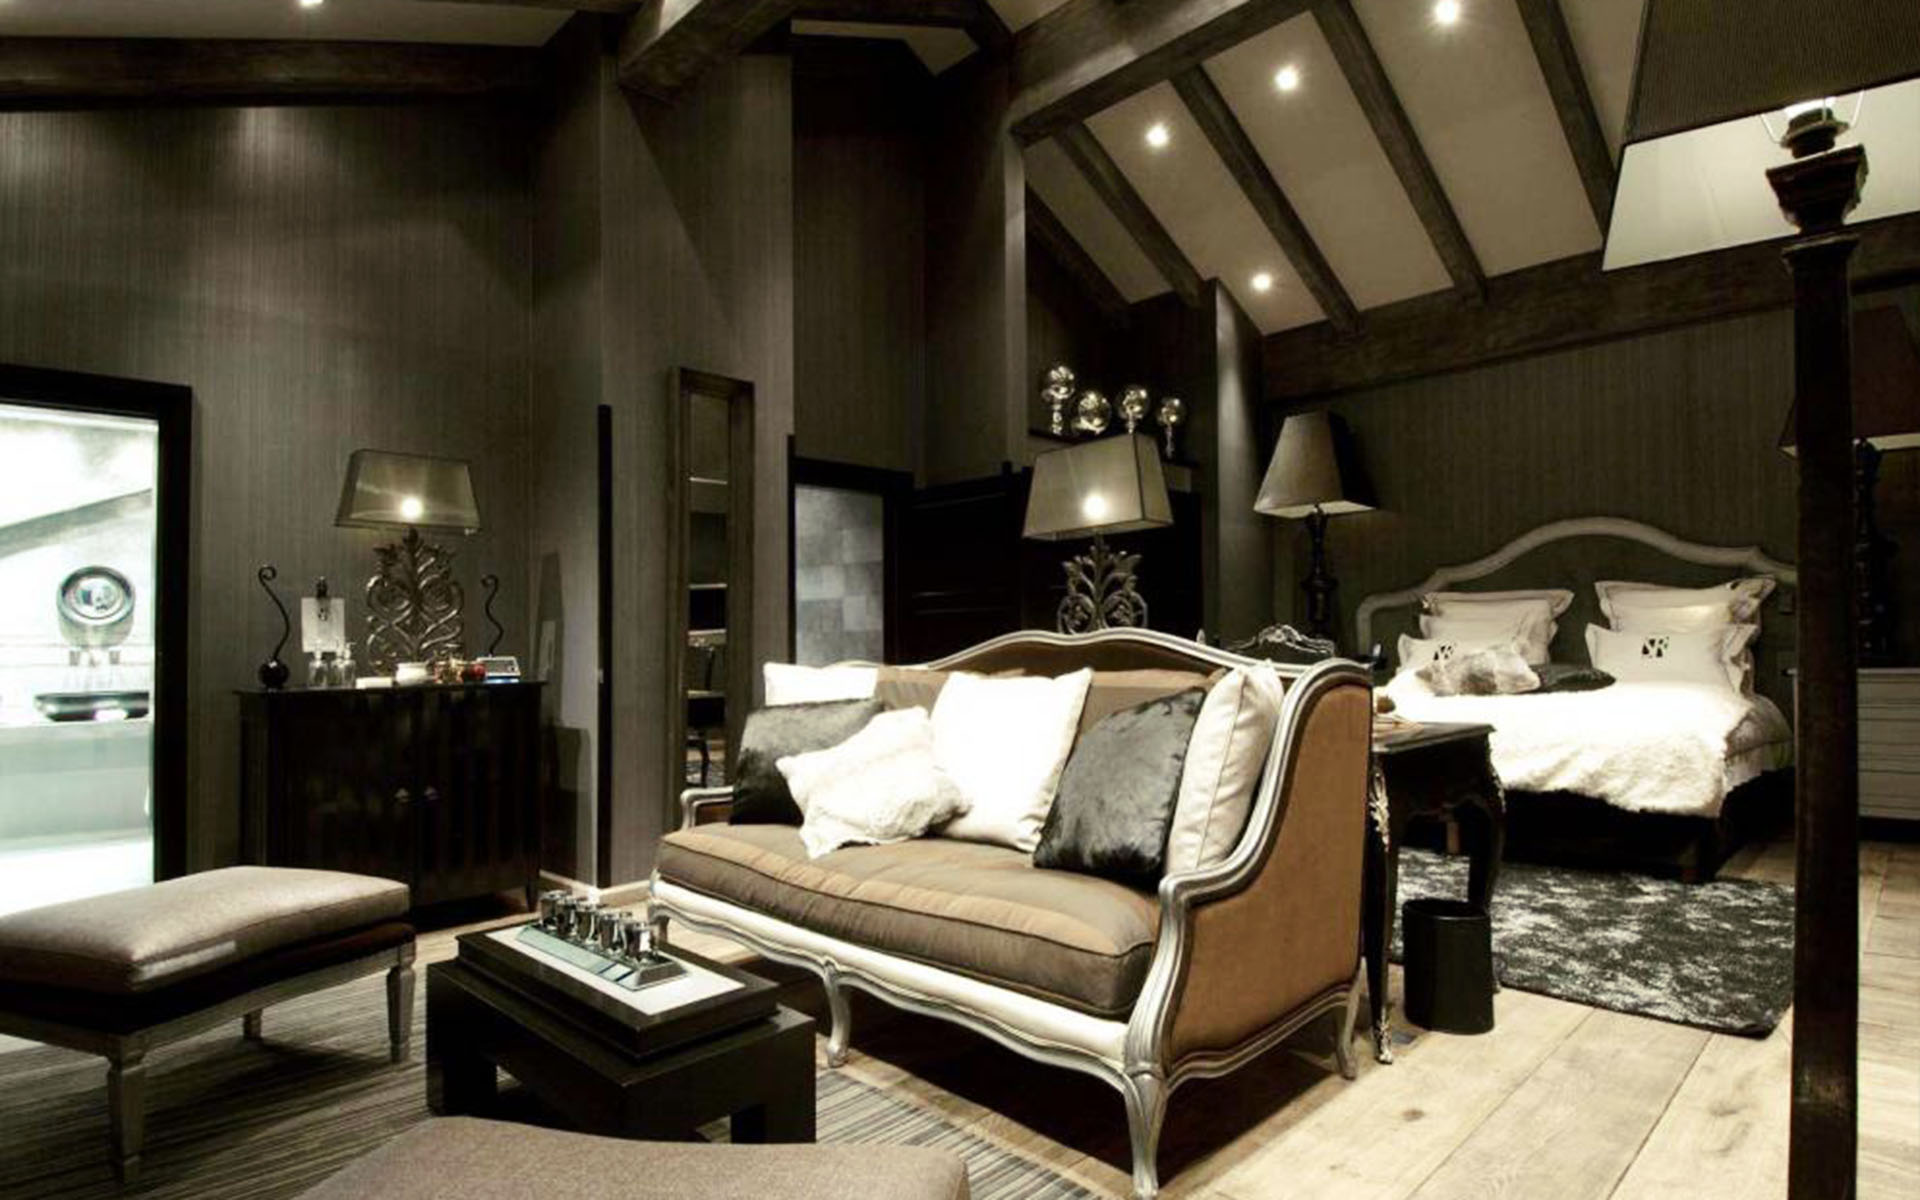 290/CHALETS/LOVE/saint_roch_courchevel_appartement_love_10.jpg